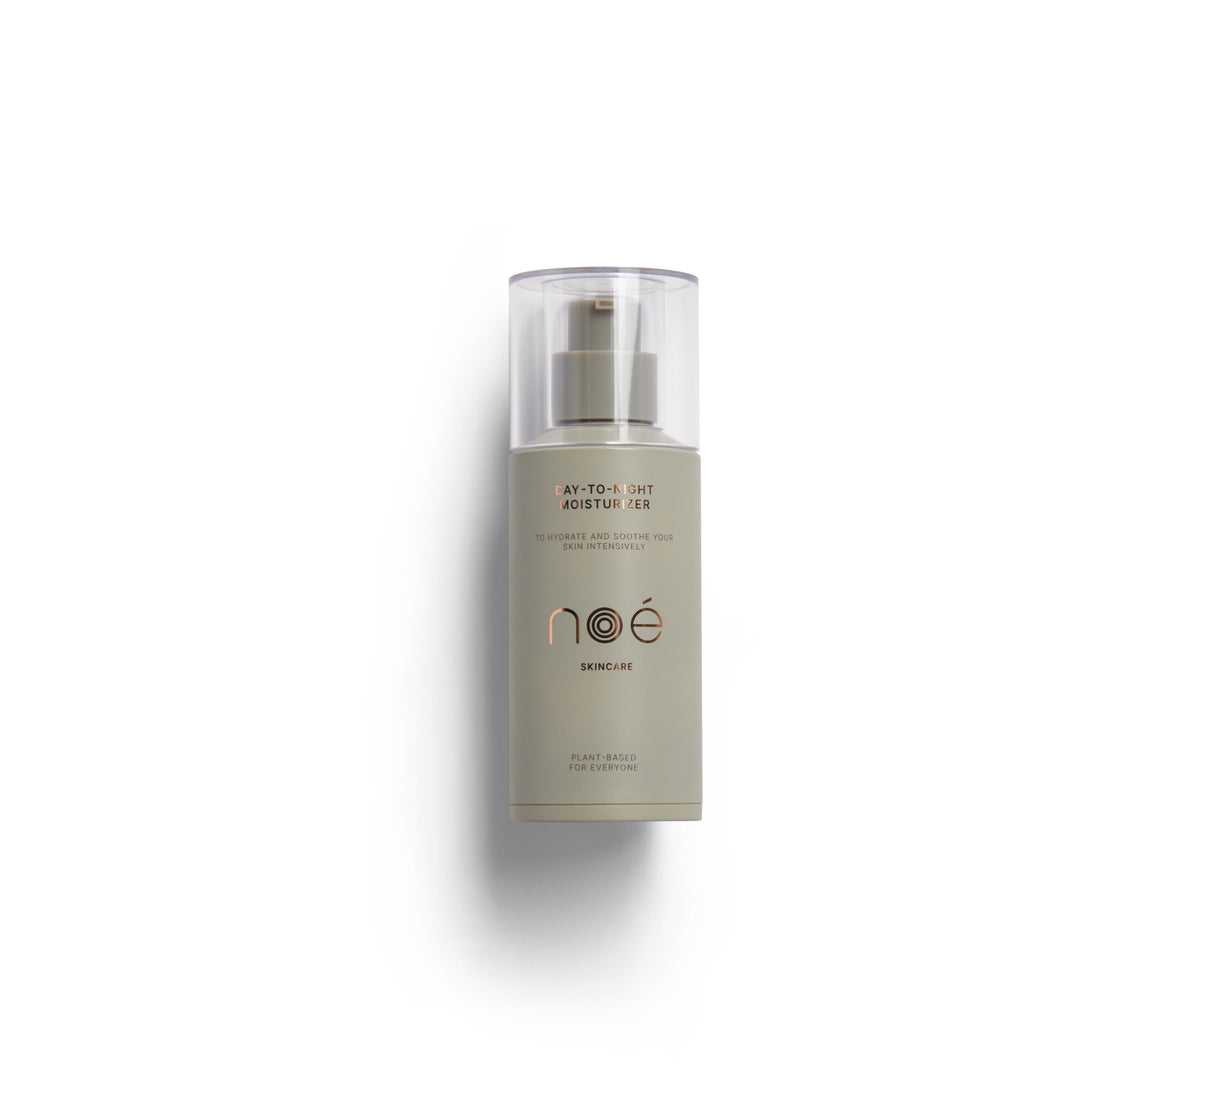 NOÉ DAY-TO-NIGHT MOISTURIZER